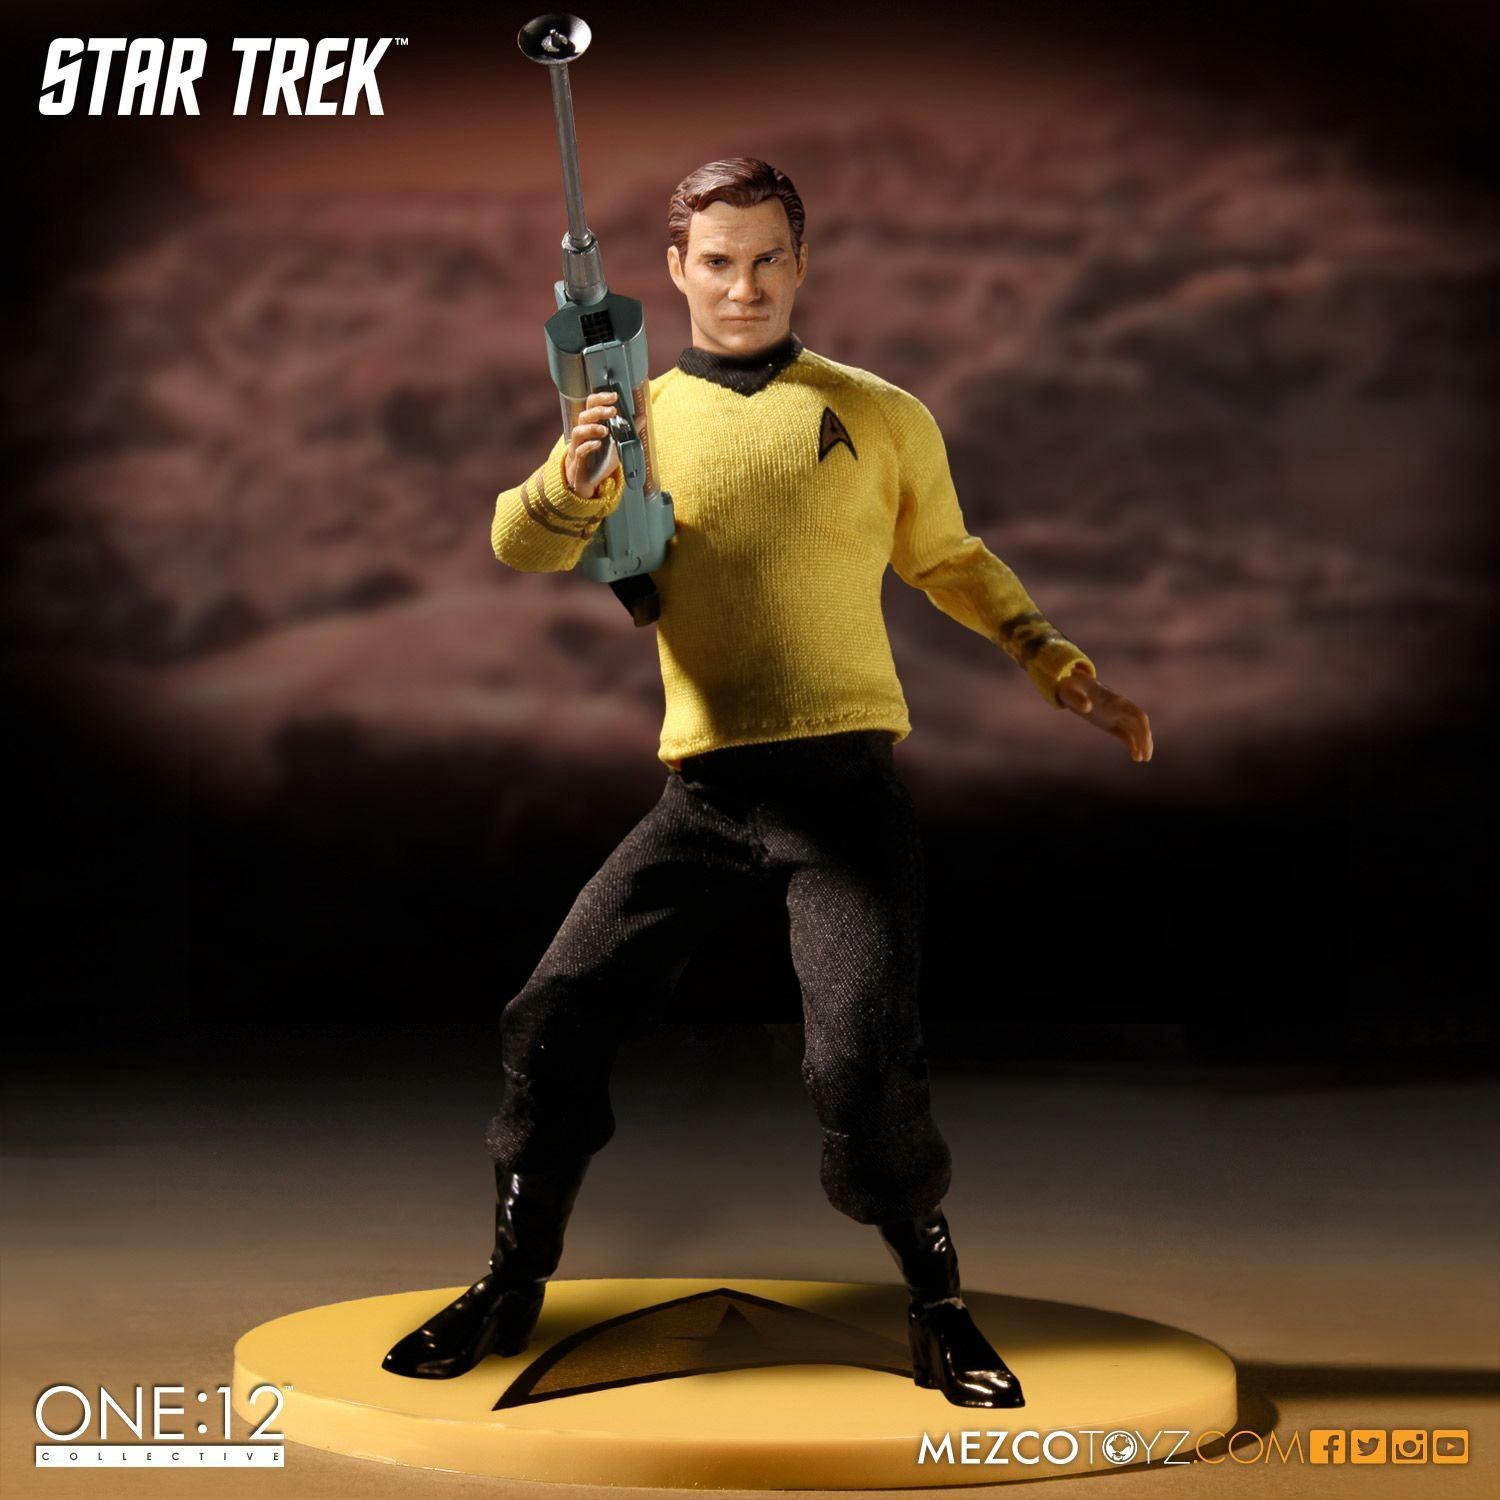 Kirk-Star-Trek-One-12-Collective-Action-Figure-09